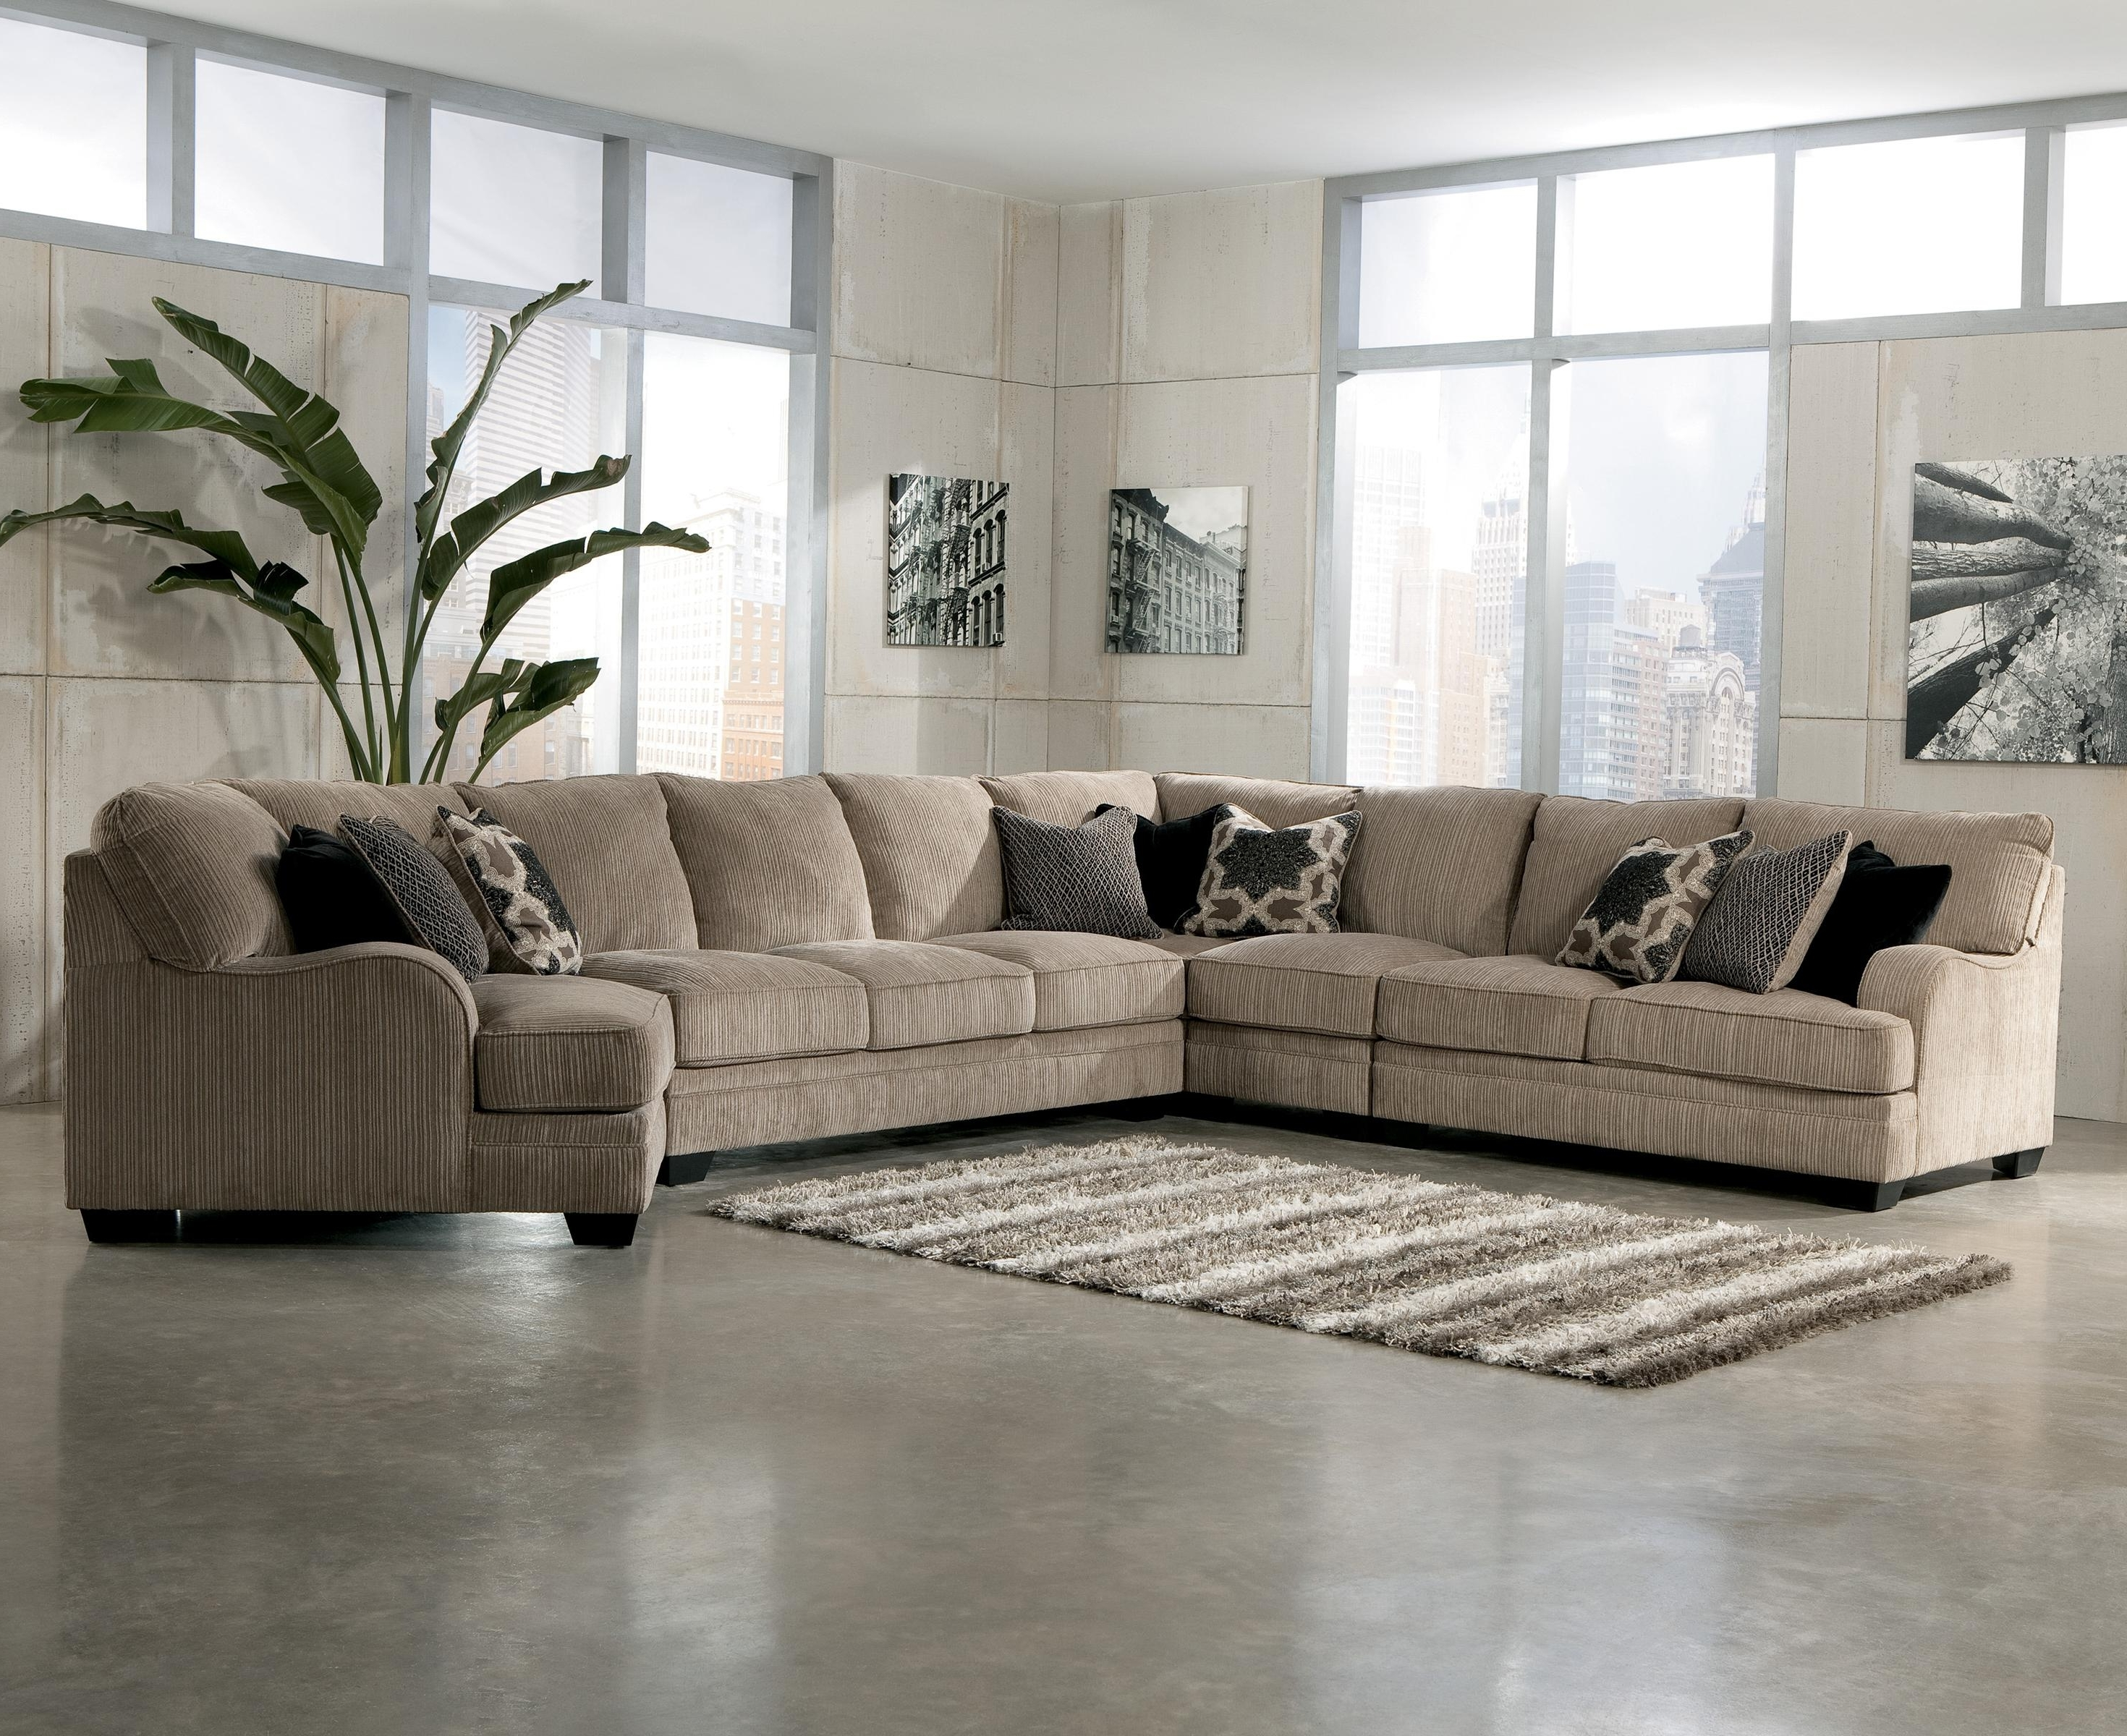 Green Bay Wi Sectional Sofas For Newest Signature Designashley Katisha – Platinum 5 Piece Sectional (View 8 of 20)